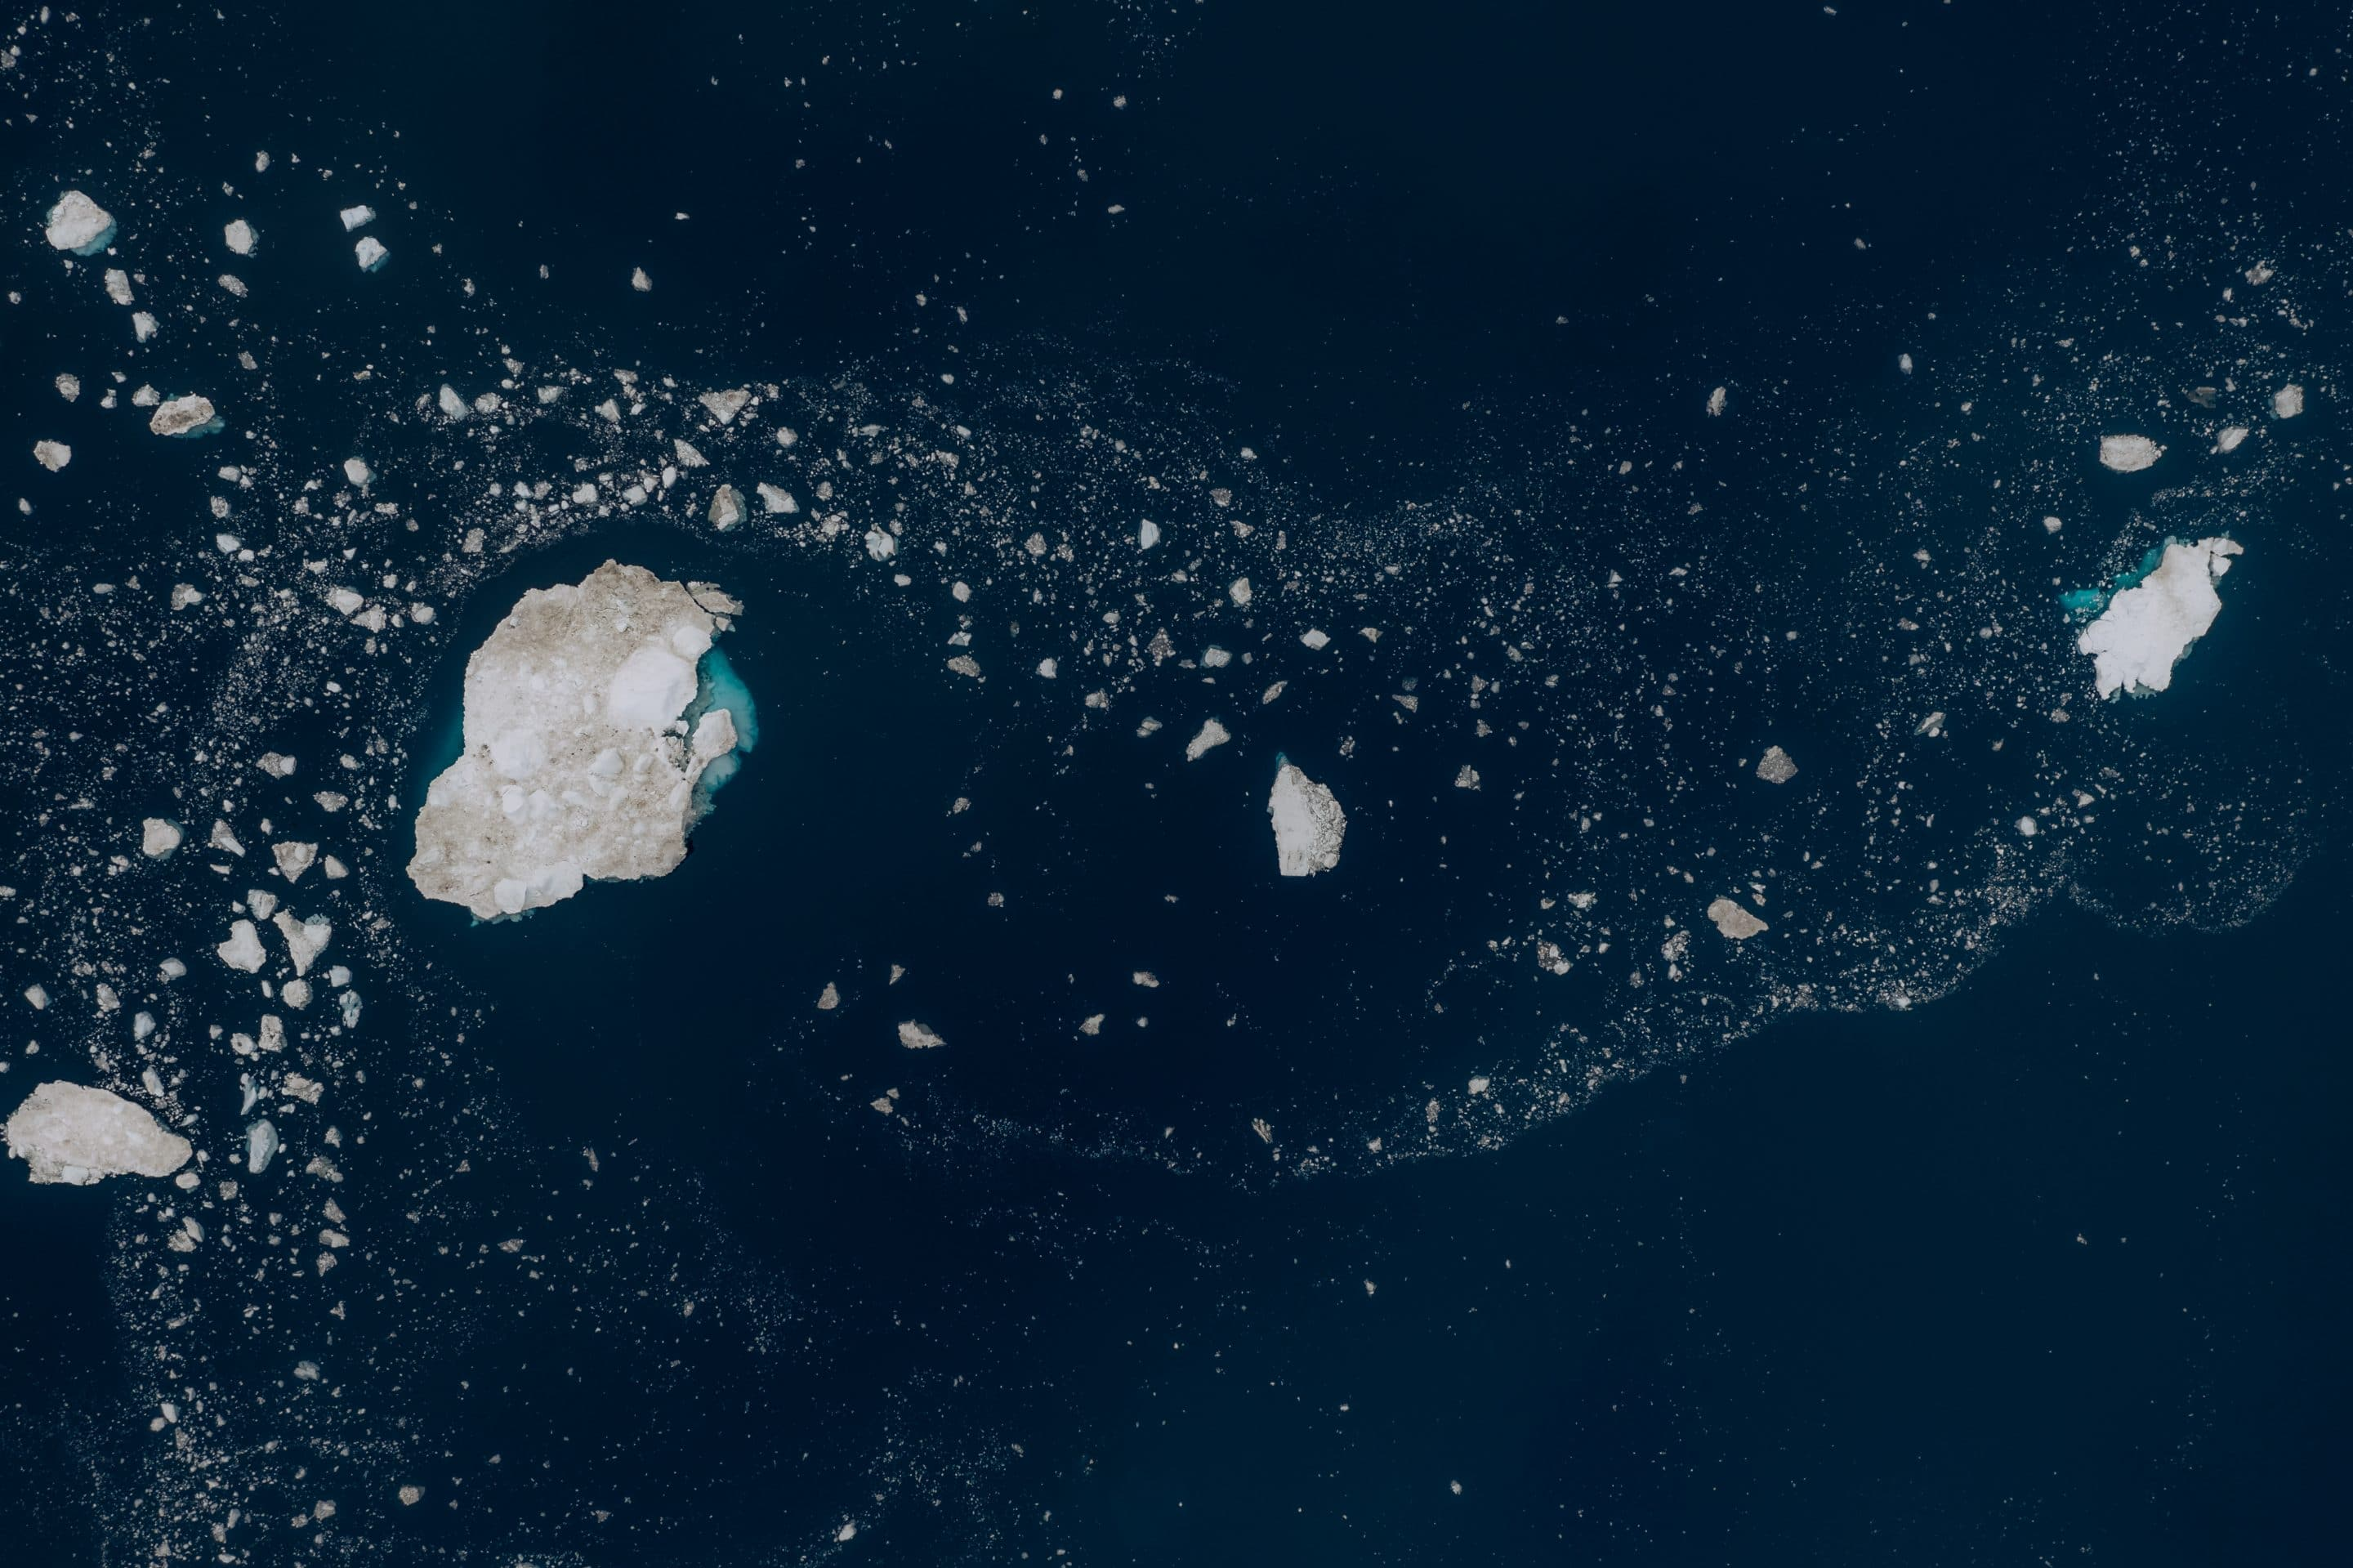 Fine art aerial photography series that sees the sea ice in Greenland as stars and galaxies that are forming a universe in the calm Atlantic ocean by Michael Schauer